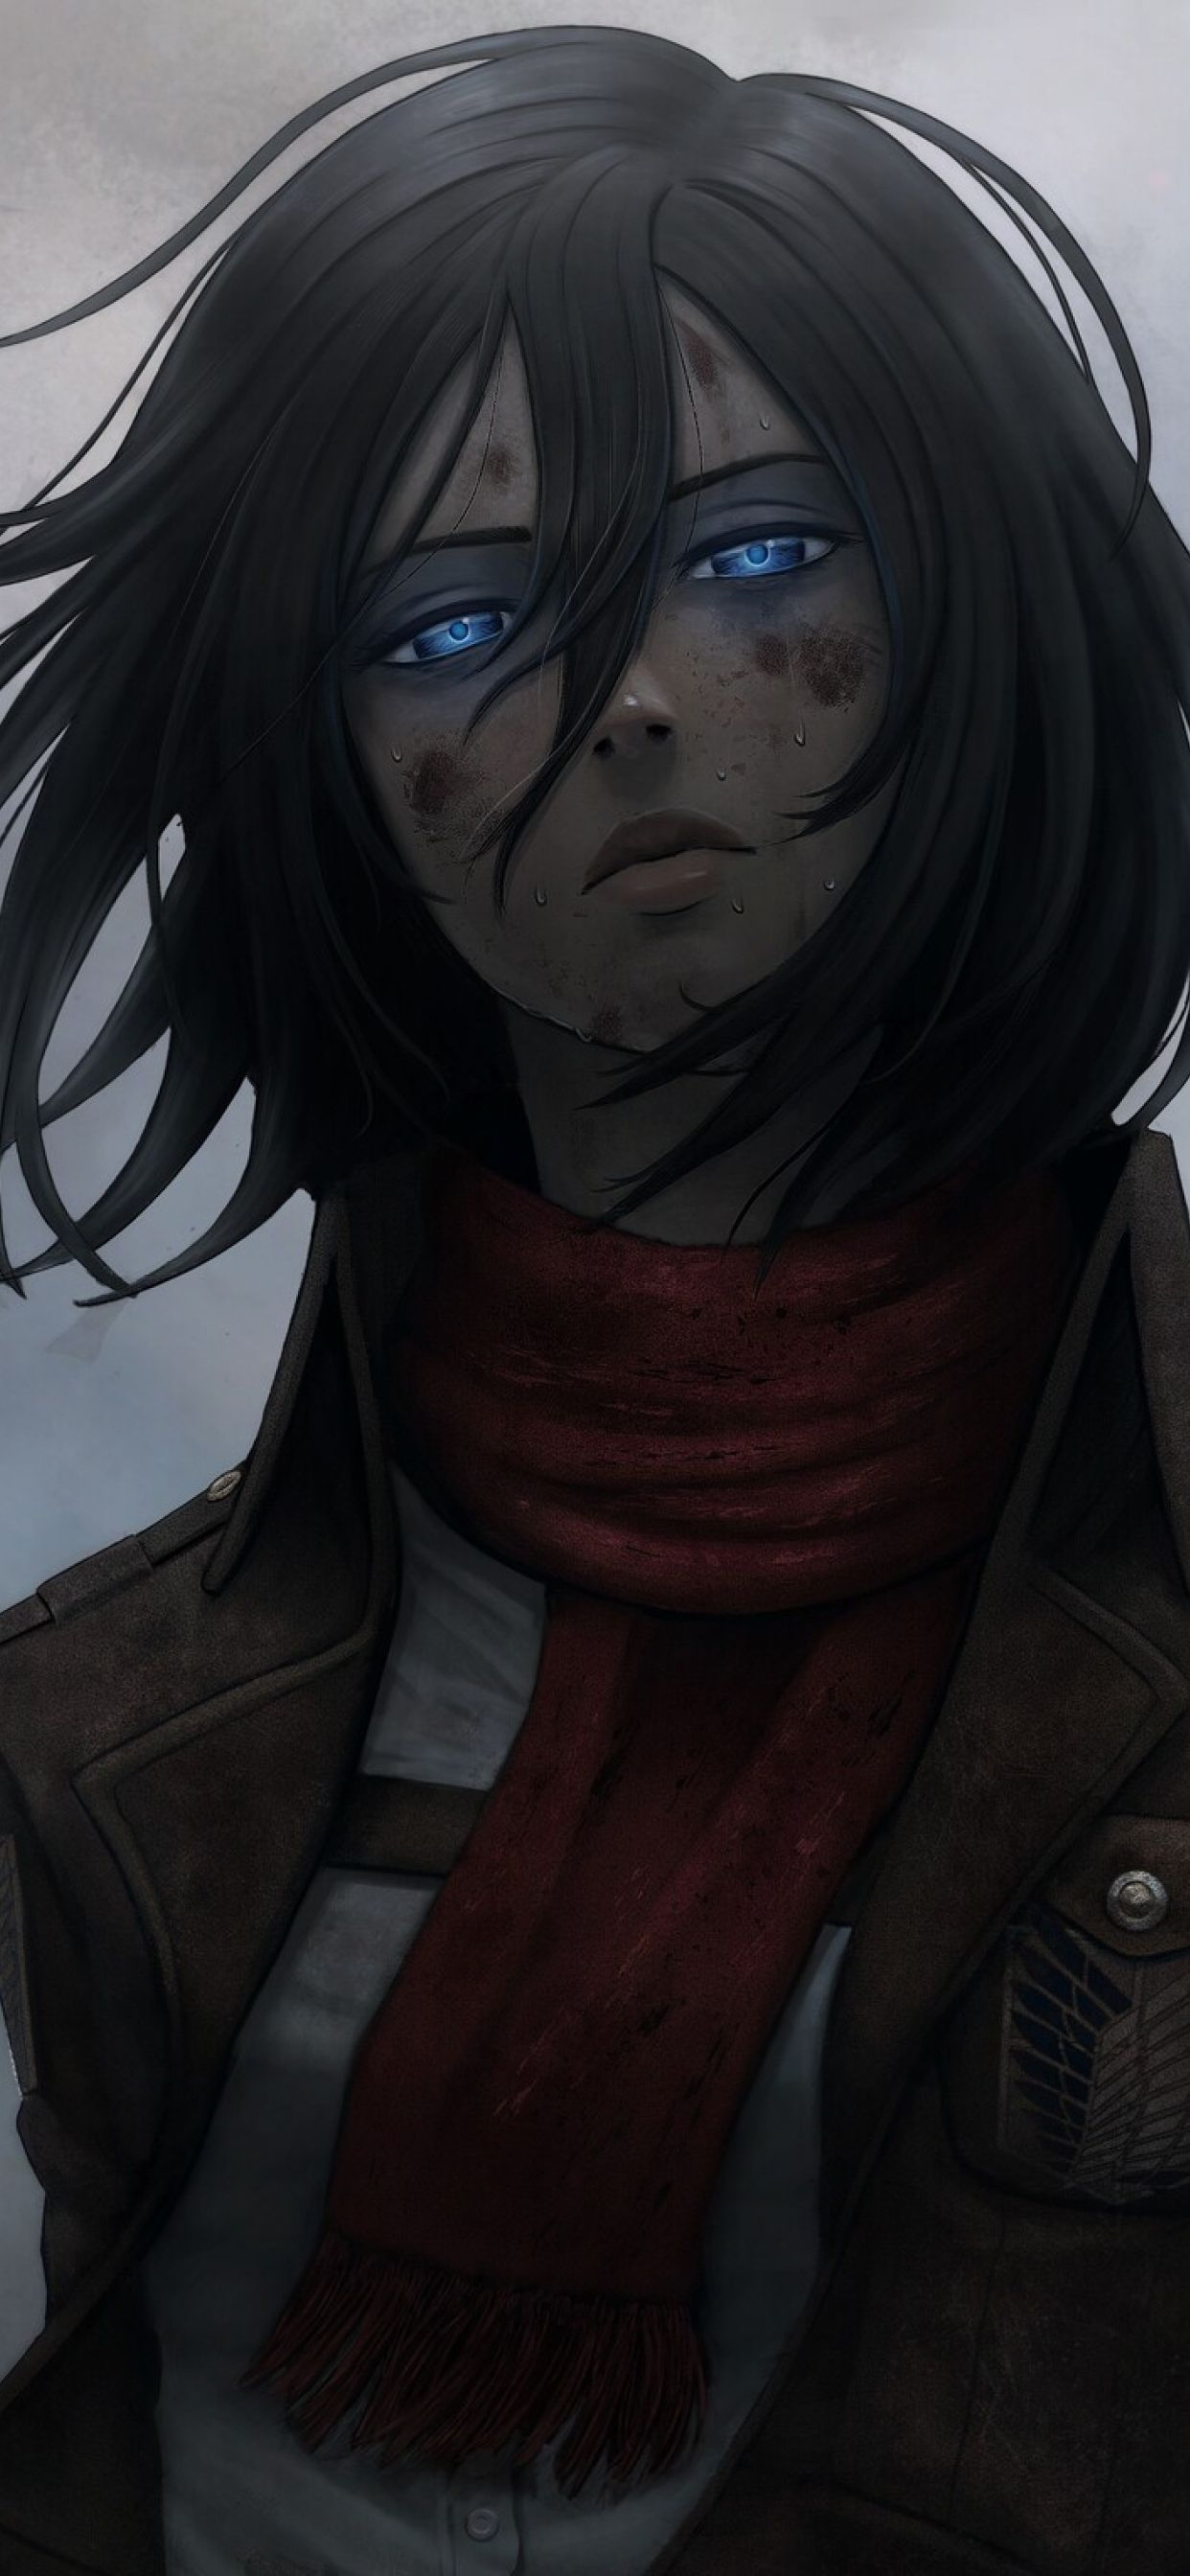 Mikasa Phone Wallpapers Top Free Mikasa Phone Backgrounds Wallpaperaccess